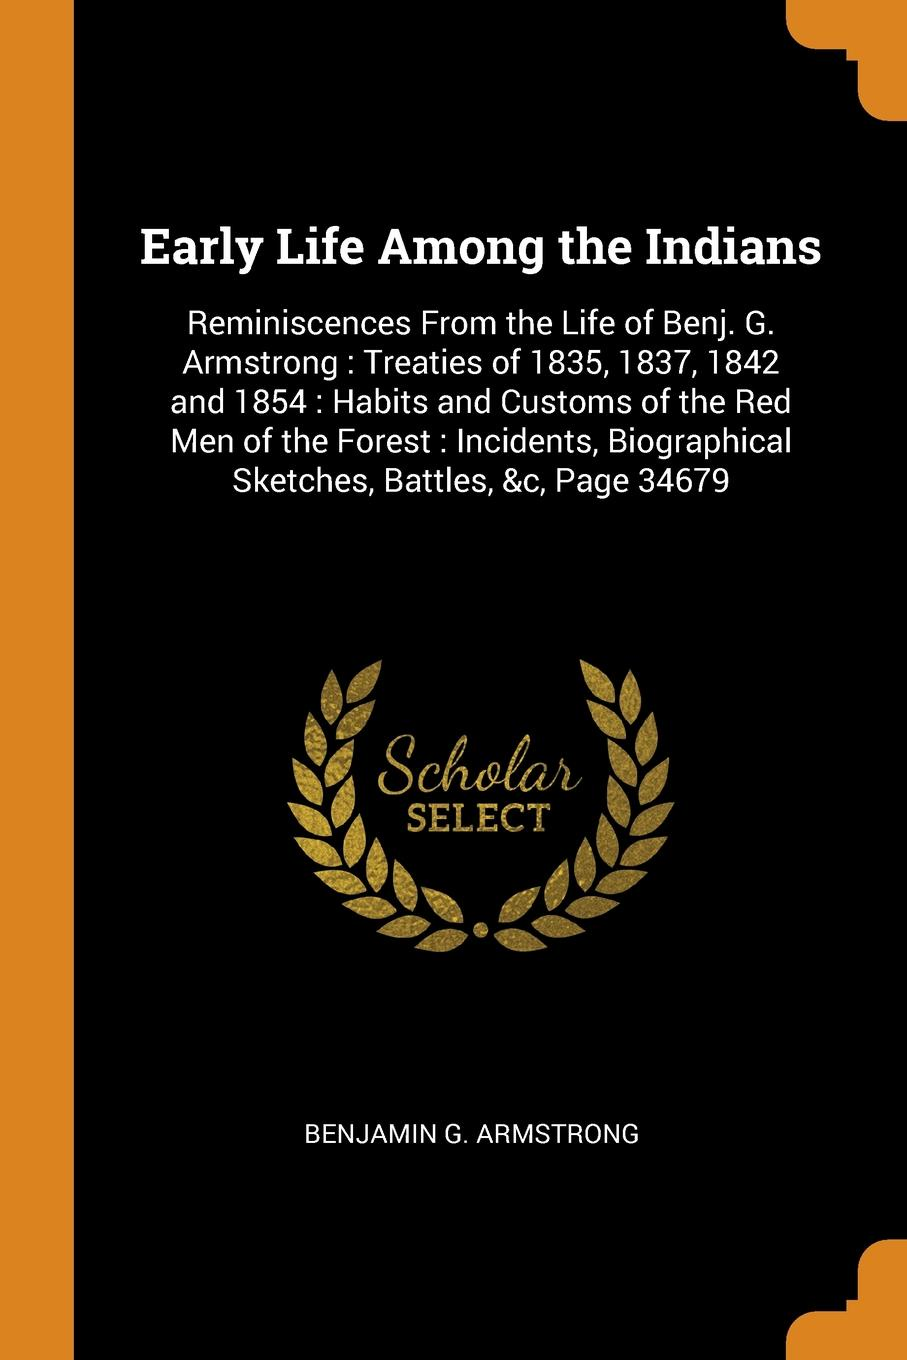 Benjamin G. Armstrong Early Life Among the Indians. Reminiscences From the Life of Benj. G. Armstrong : Treaties of 1835, 1837, 1842 and 1854 : Habits and Customs of the Red Men of the Forest : Incidents, Biographical Sketches, Battles, .c, Page 34679 benjamin armstrong early life among the indians reminiscences from the life of benj g armstrong